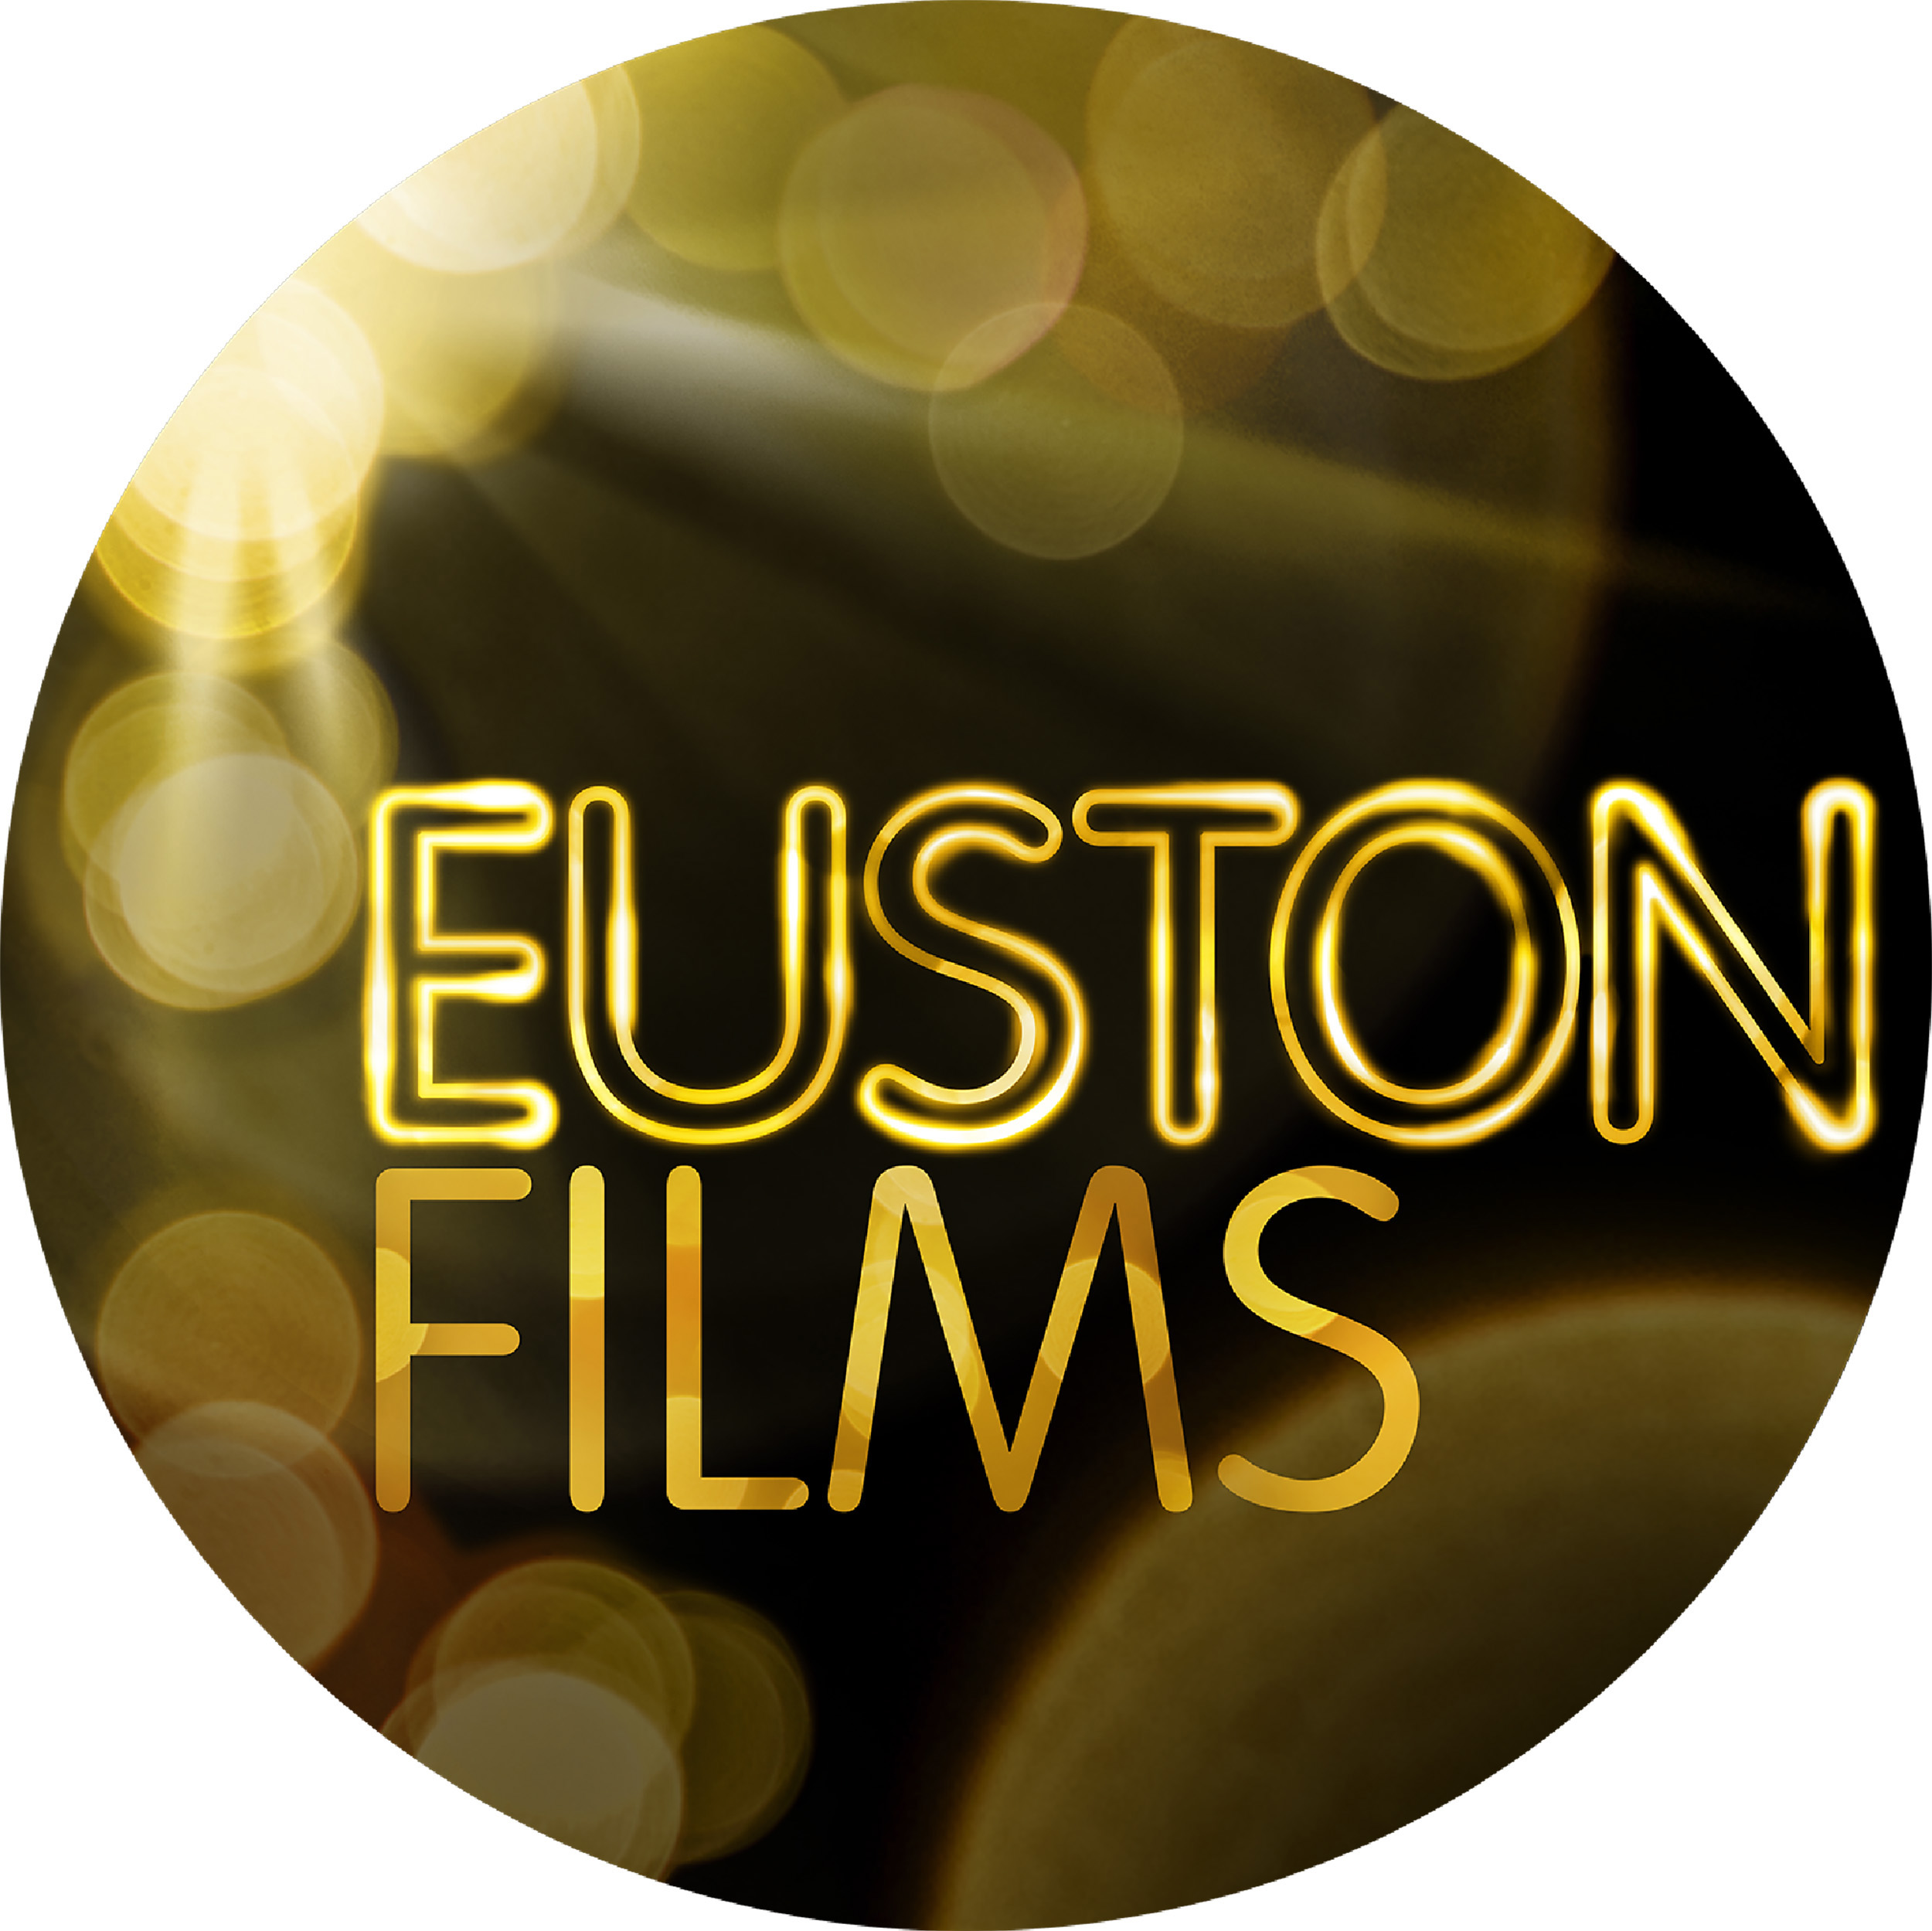 Euston Films logo